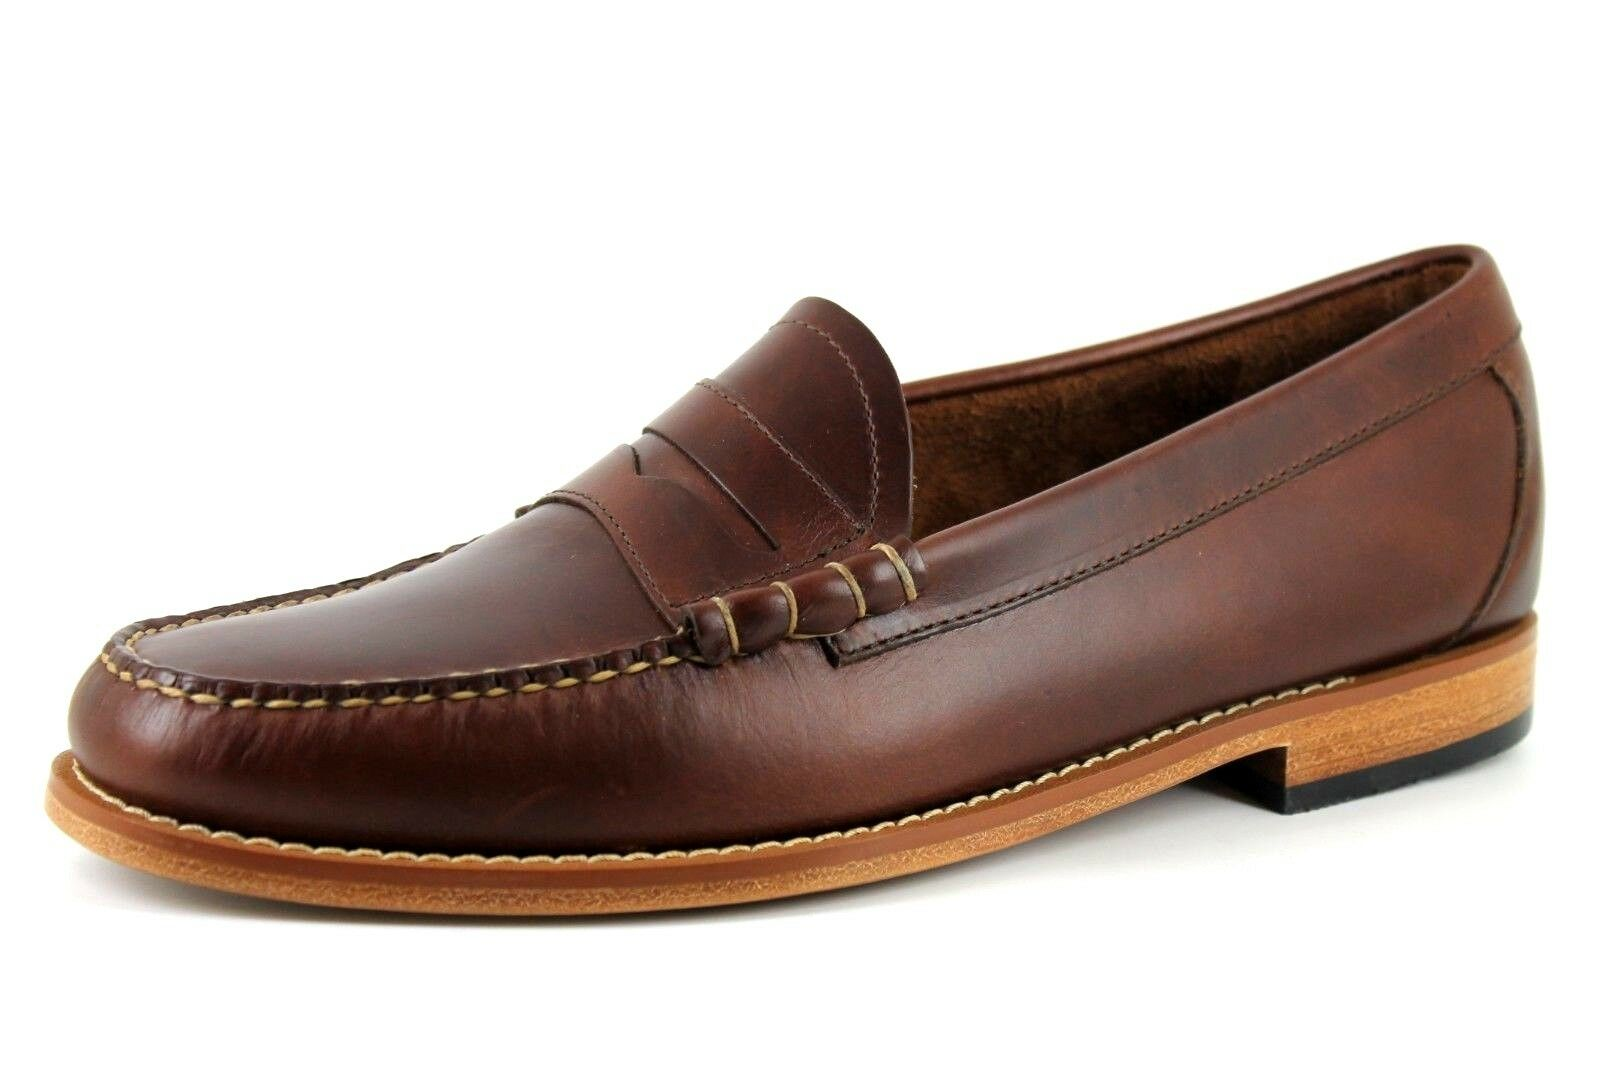 Weejuns G.H.Bass & Co Larson Mens Dark Brown Leather Penny Loafer shoes